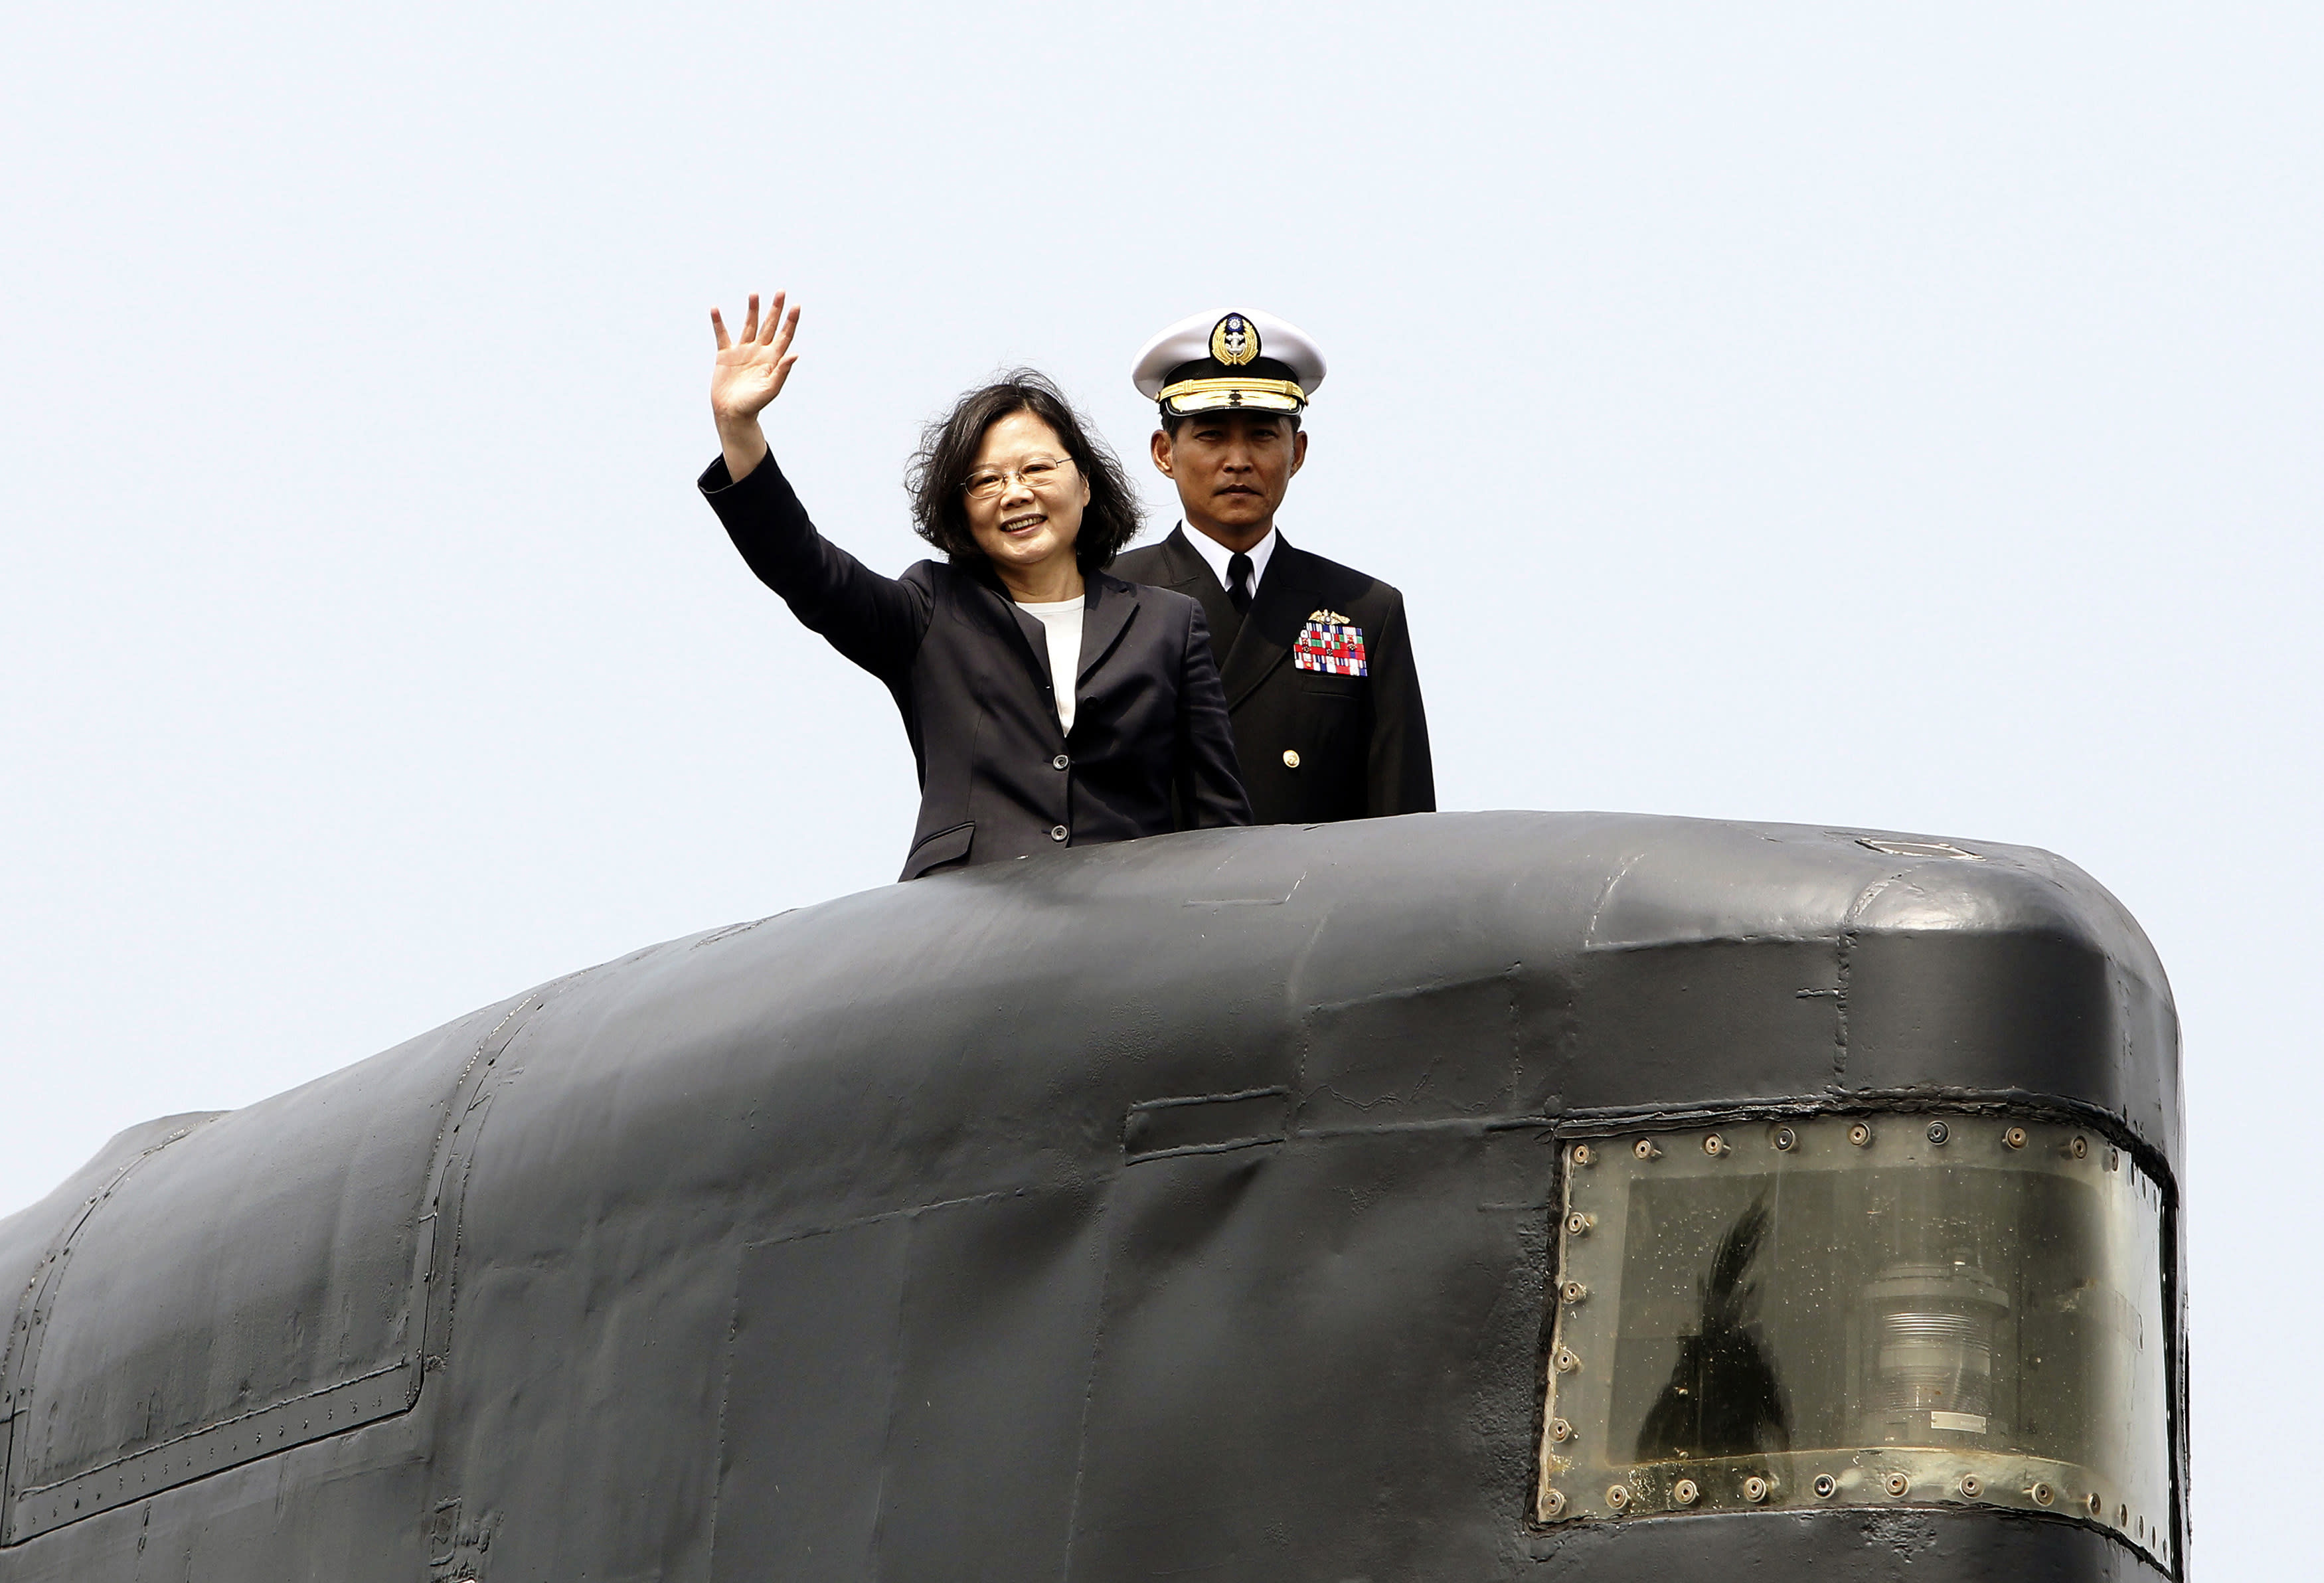 """FILE - In this March 21, 2017, file photo, Taiwan's President Tsai Ing-wen, left, waves from a Zwaardvis-class submarine during a visit at Zuoying Naval base in Kaohsiung, southern Taiwan. China says attempts by Taiwan's government to block its goal of bringing the self-governing island under Beijing's control are like """"stretching out an arm to block a car."""" The new rhetorical broadside was launched late Tuesday, March 12, 2019 against Taiwanese President Tsai following her announcement of guidelines to counter China's """"one country, two systems"""" framework for political unification with the island. (AP Photo/ Chiang Ying-ying, File)"""